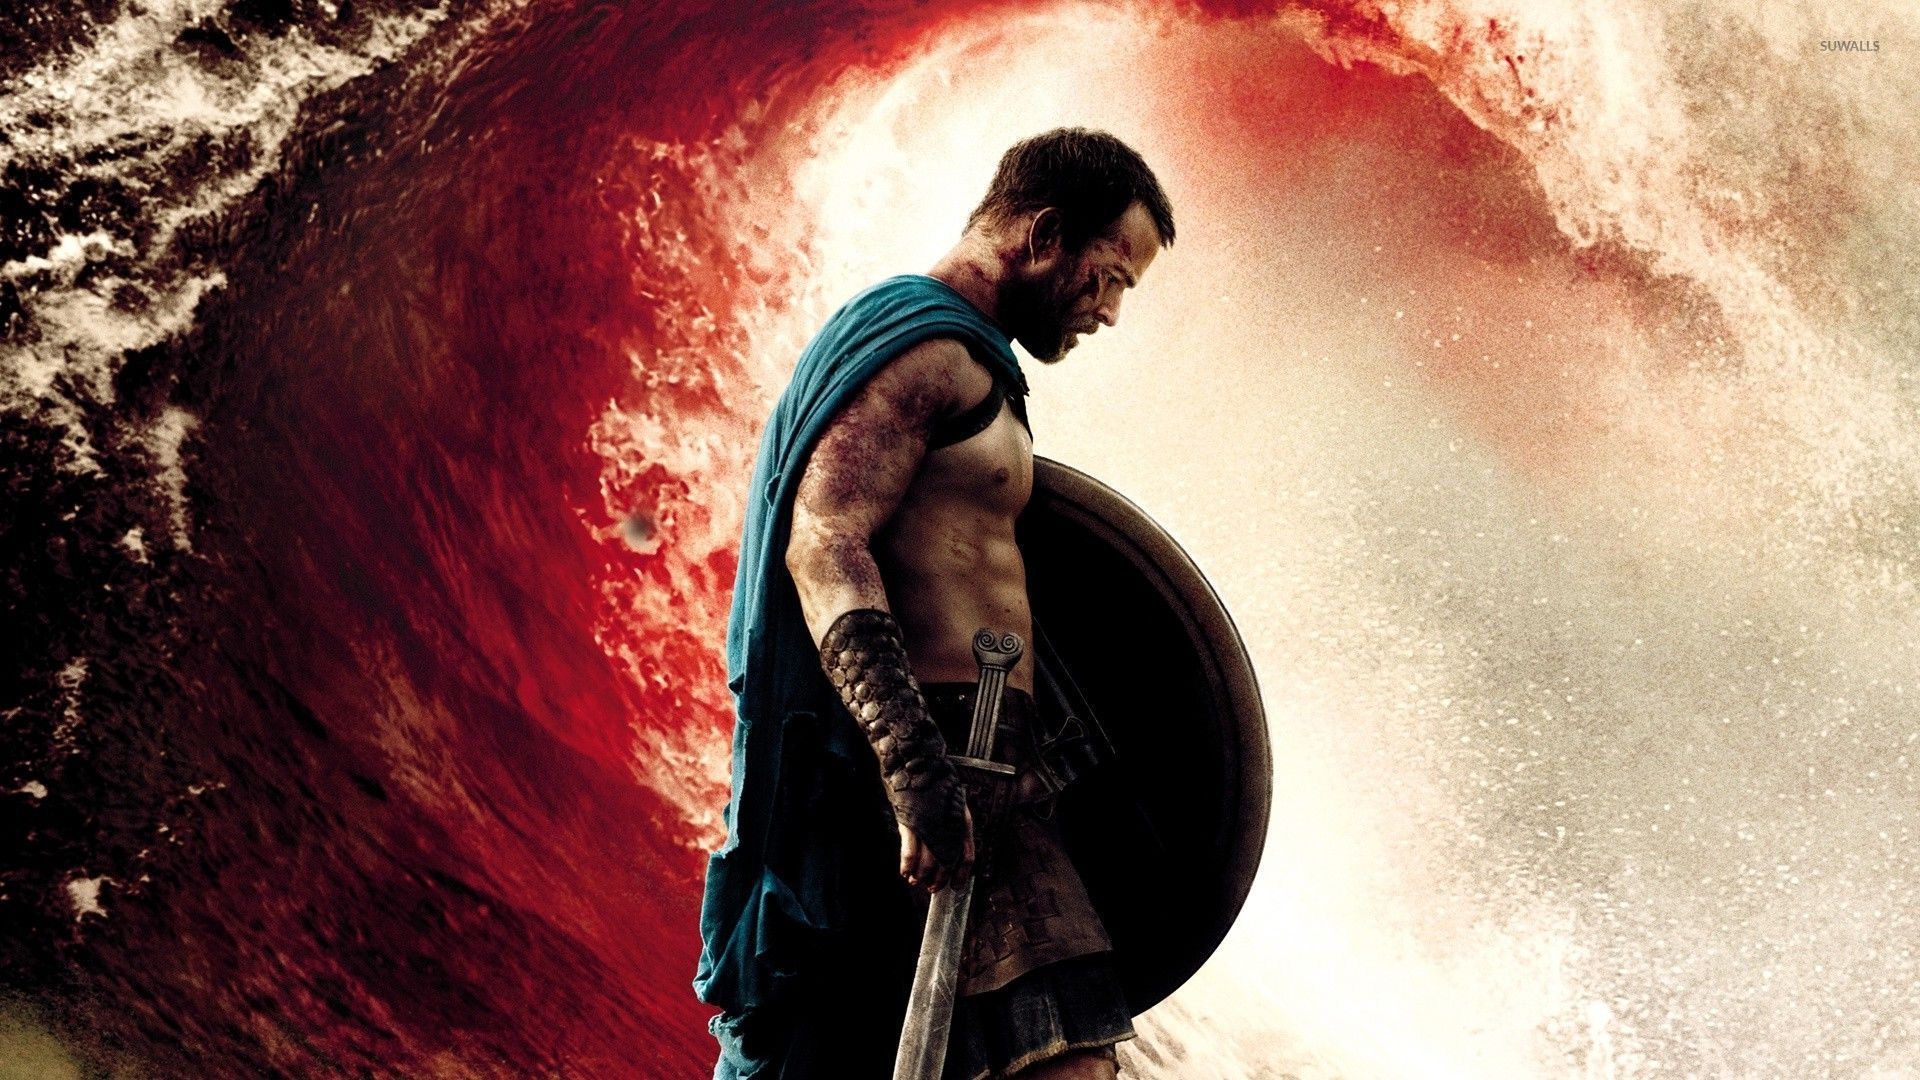 1920x1080 - 300: Rise of an Empire Wallpapers 11